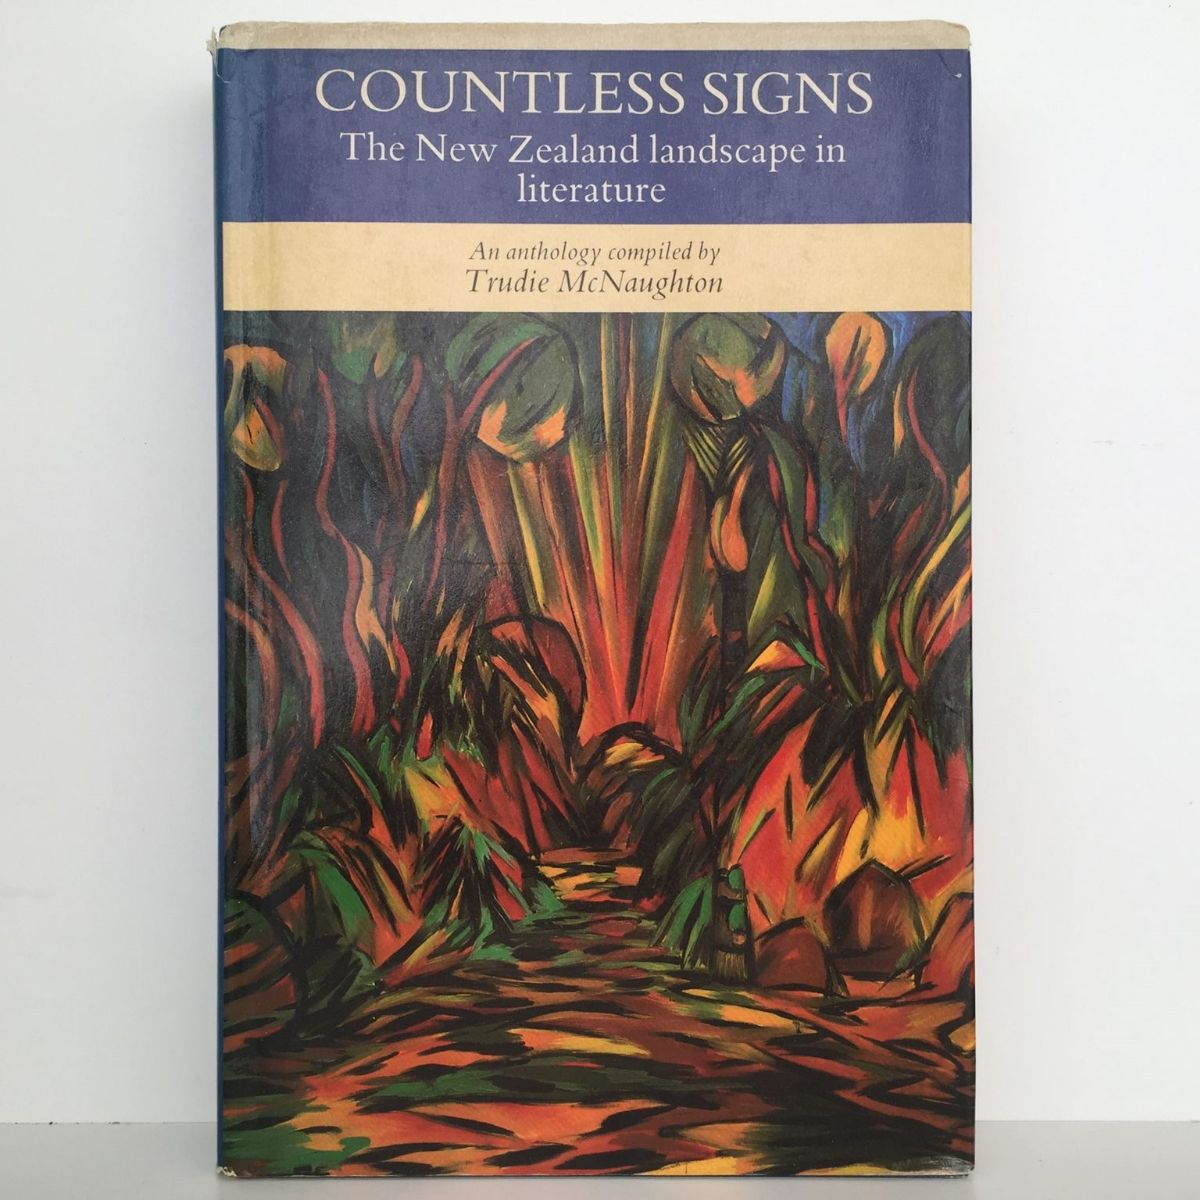 COUNTLESS SIGNS: The New Zealand Landscape In Literature